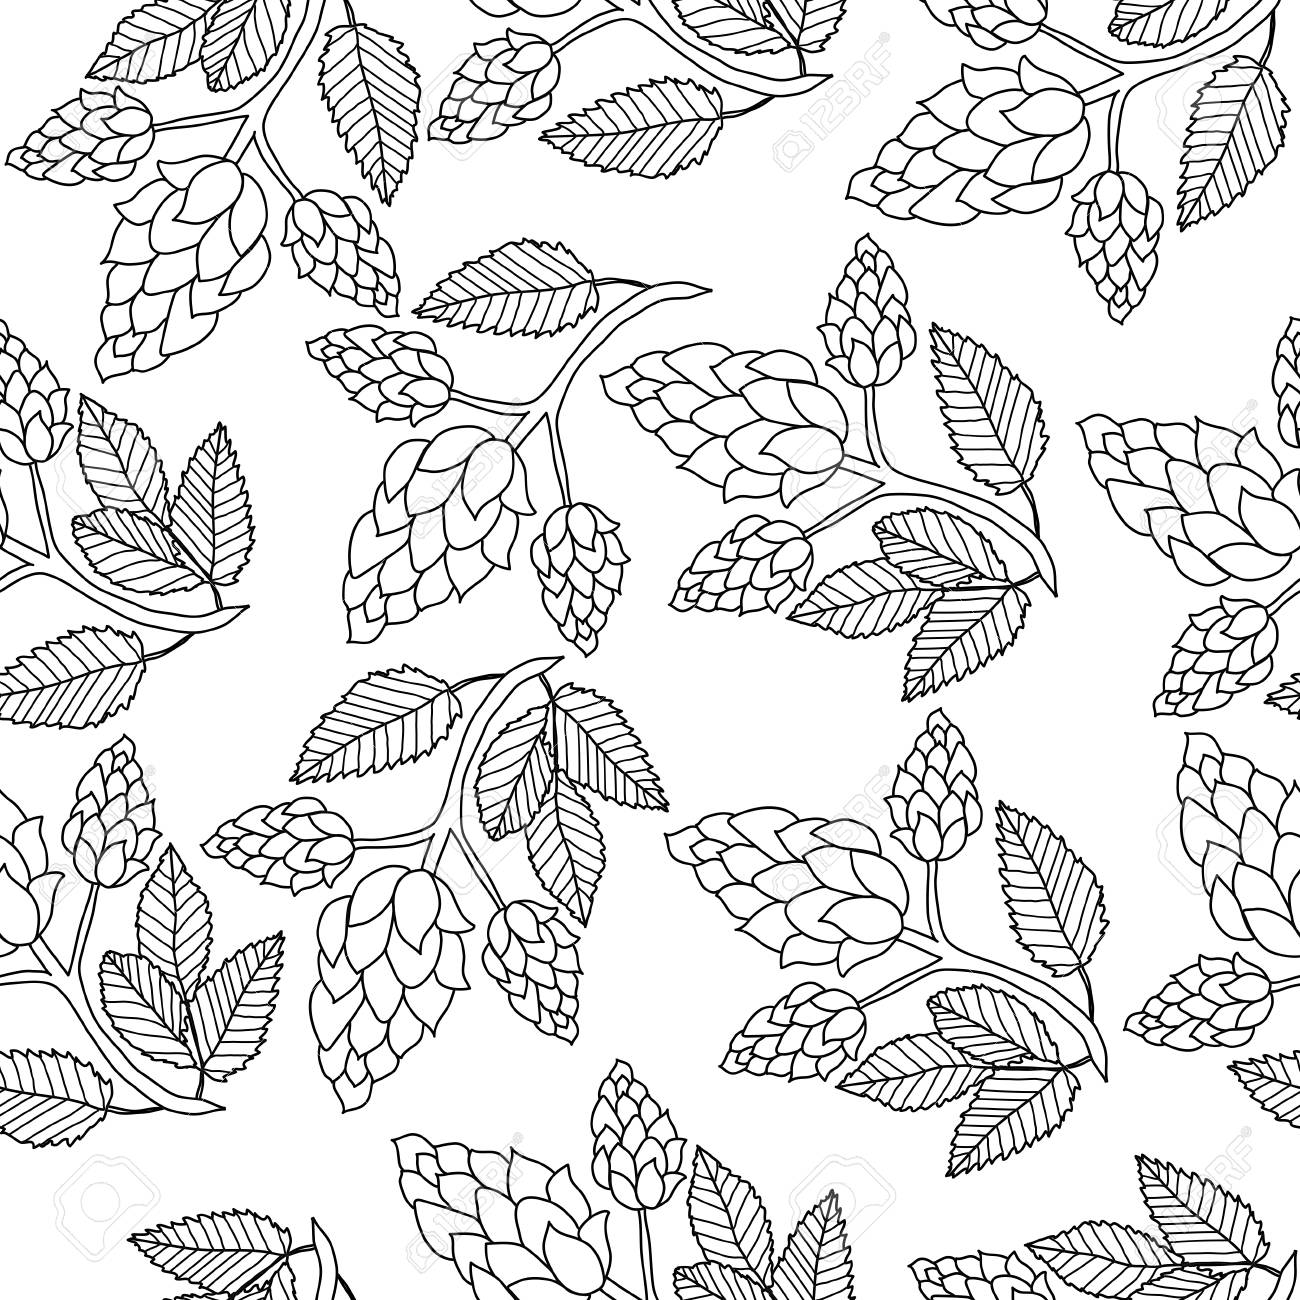 1300x1300 Hops Seamless Pattern, Hand Drawing, Doodle Style. Outline